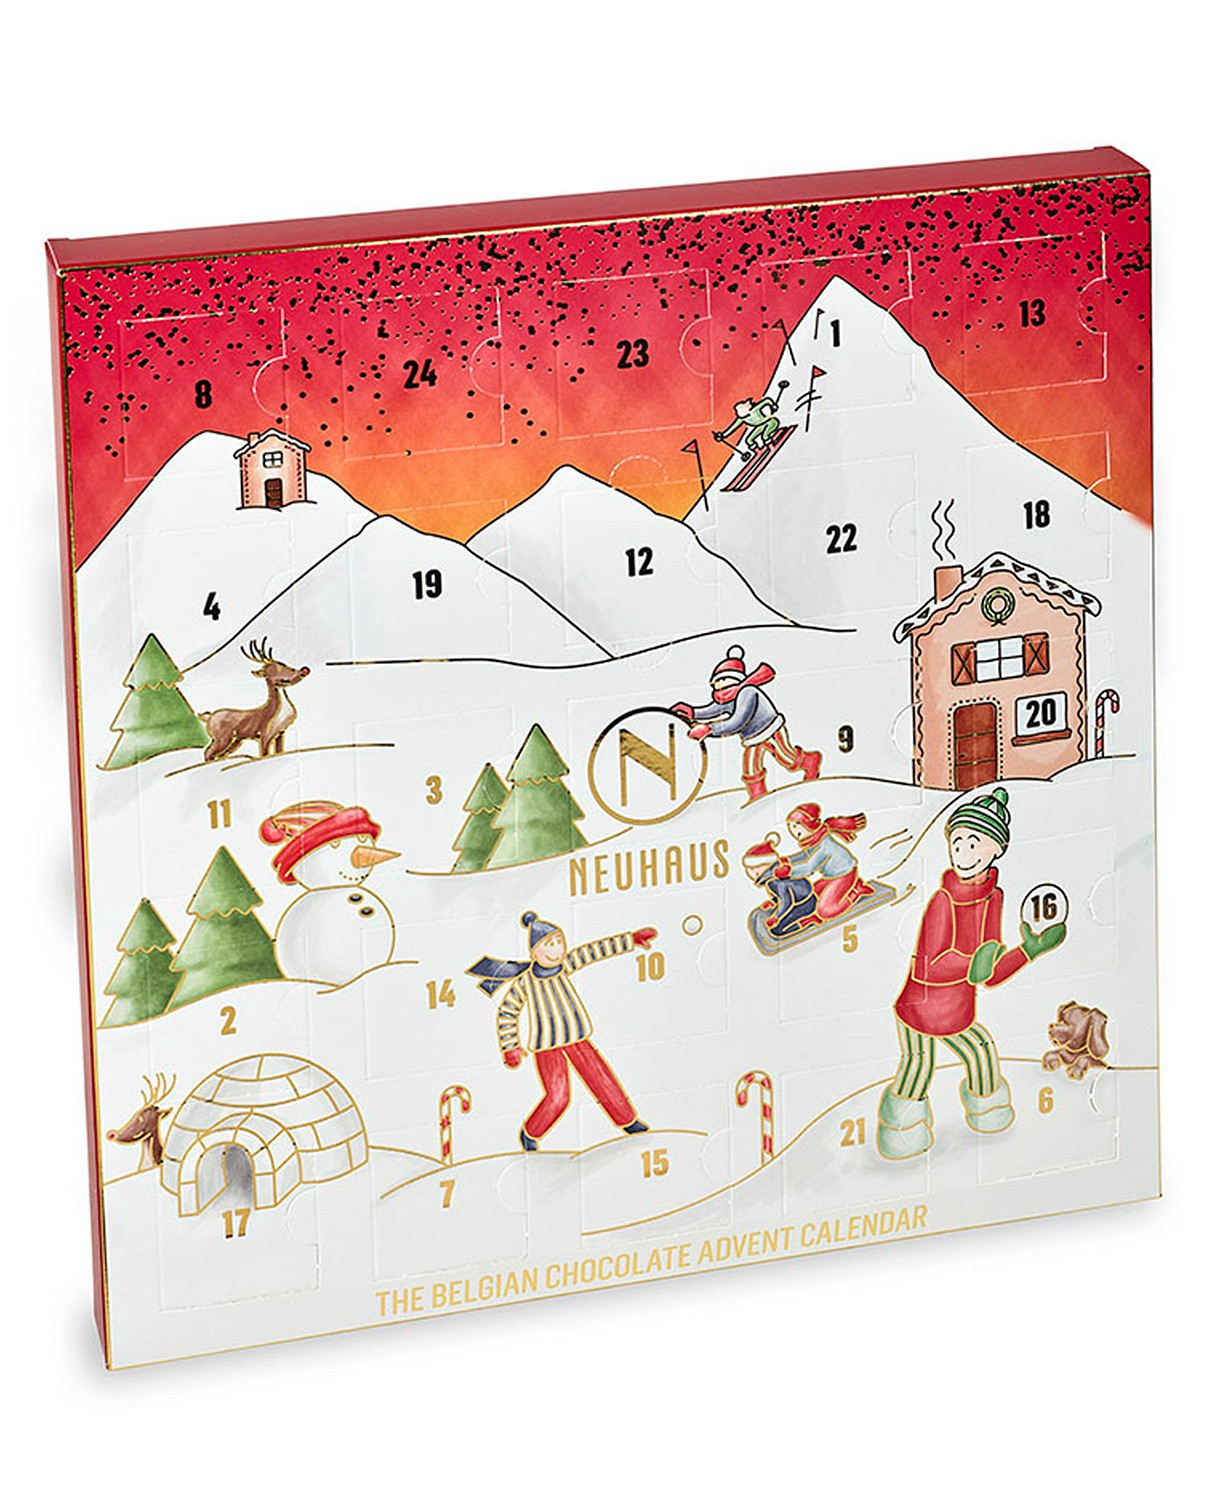 Neuhaus Chocolate Holiday Advent Calendar